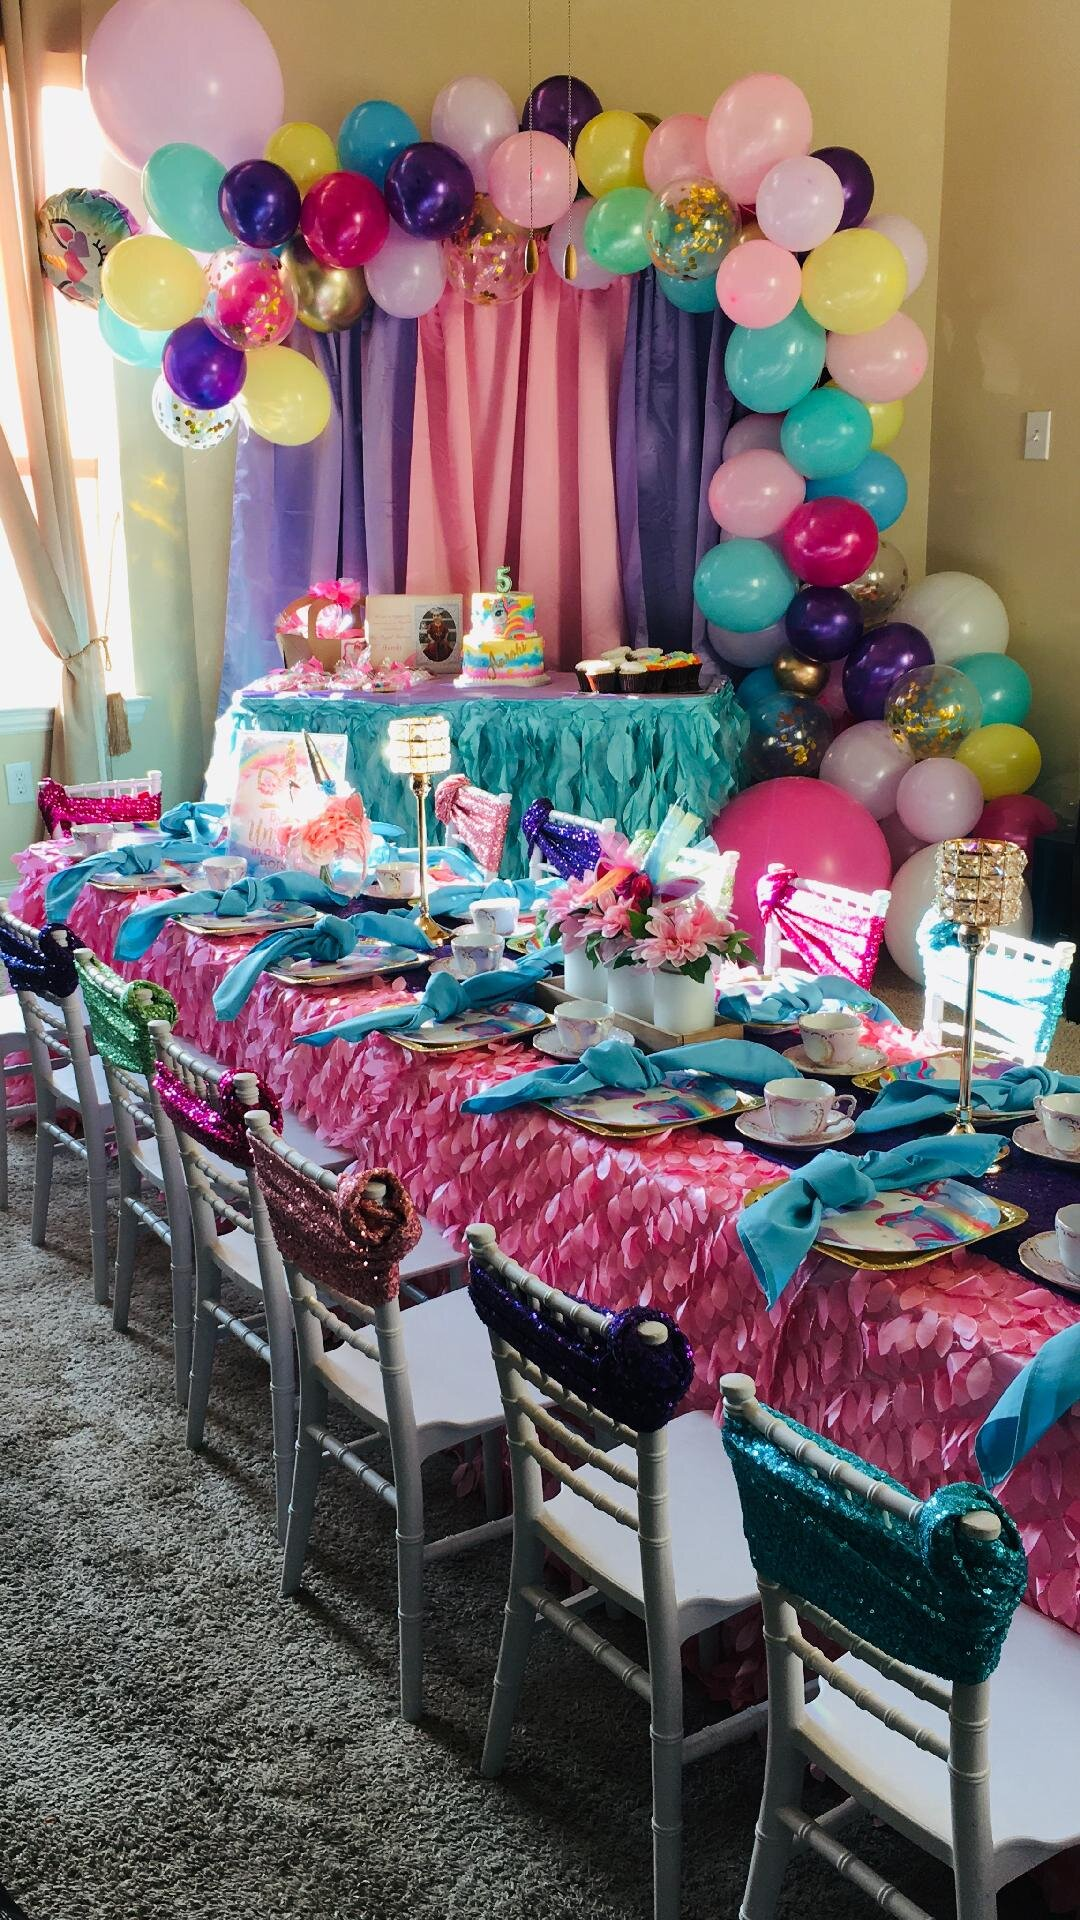 houston princess tea party for kids girls birthday parties spring the woodlands memorial pearland sugar land west university league city friendswood tomball humble kingwood 4.jpg